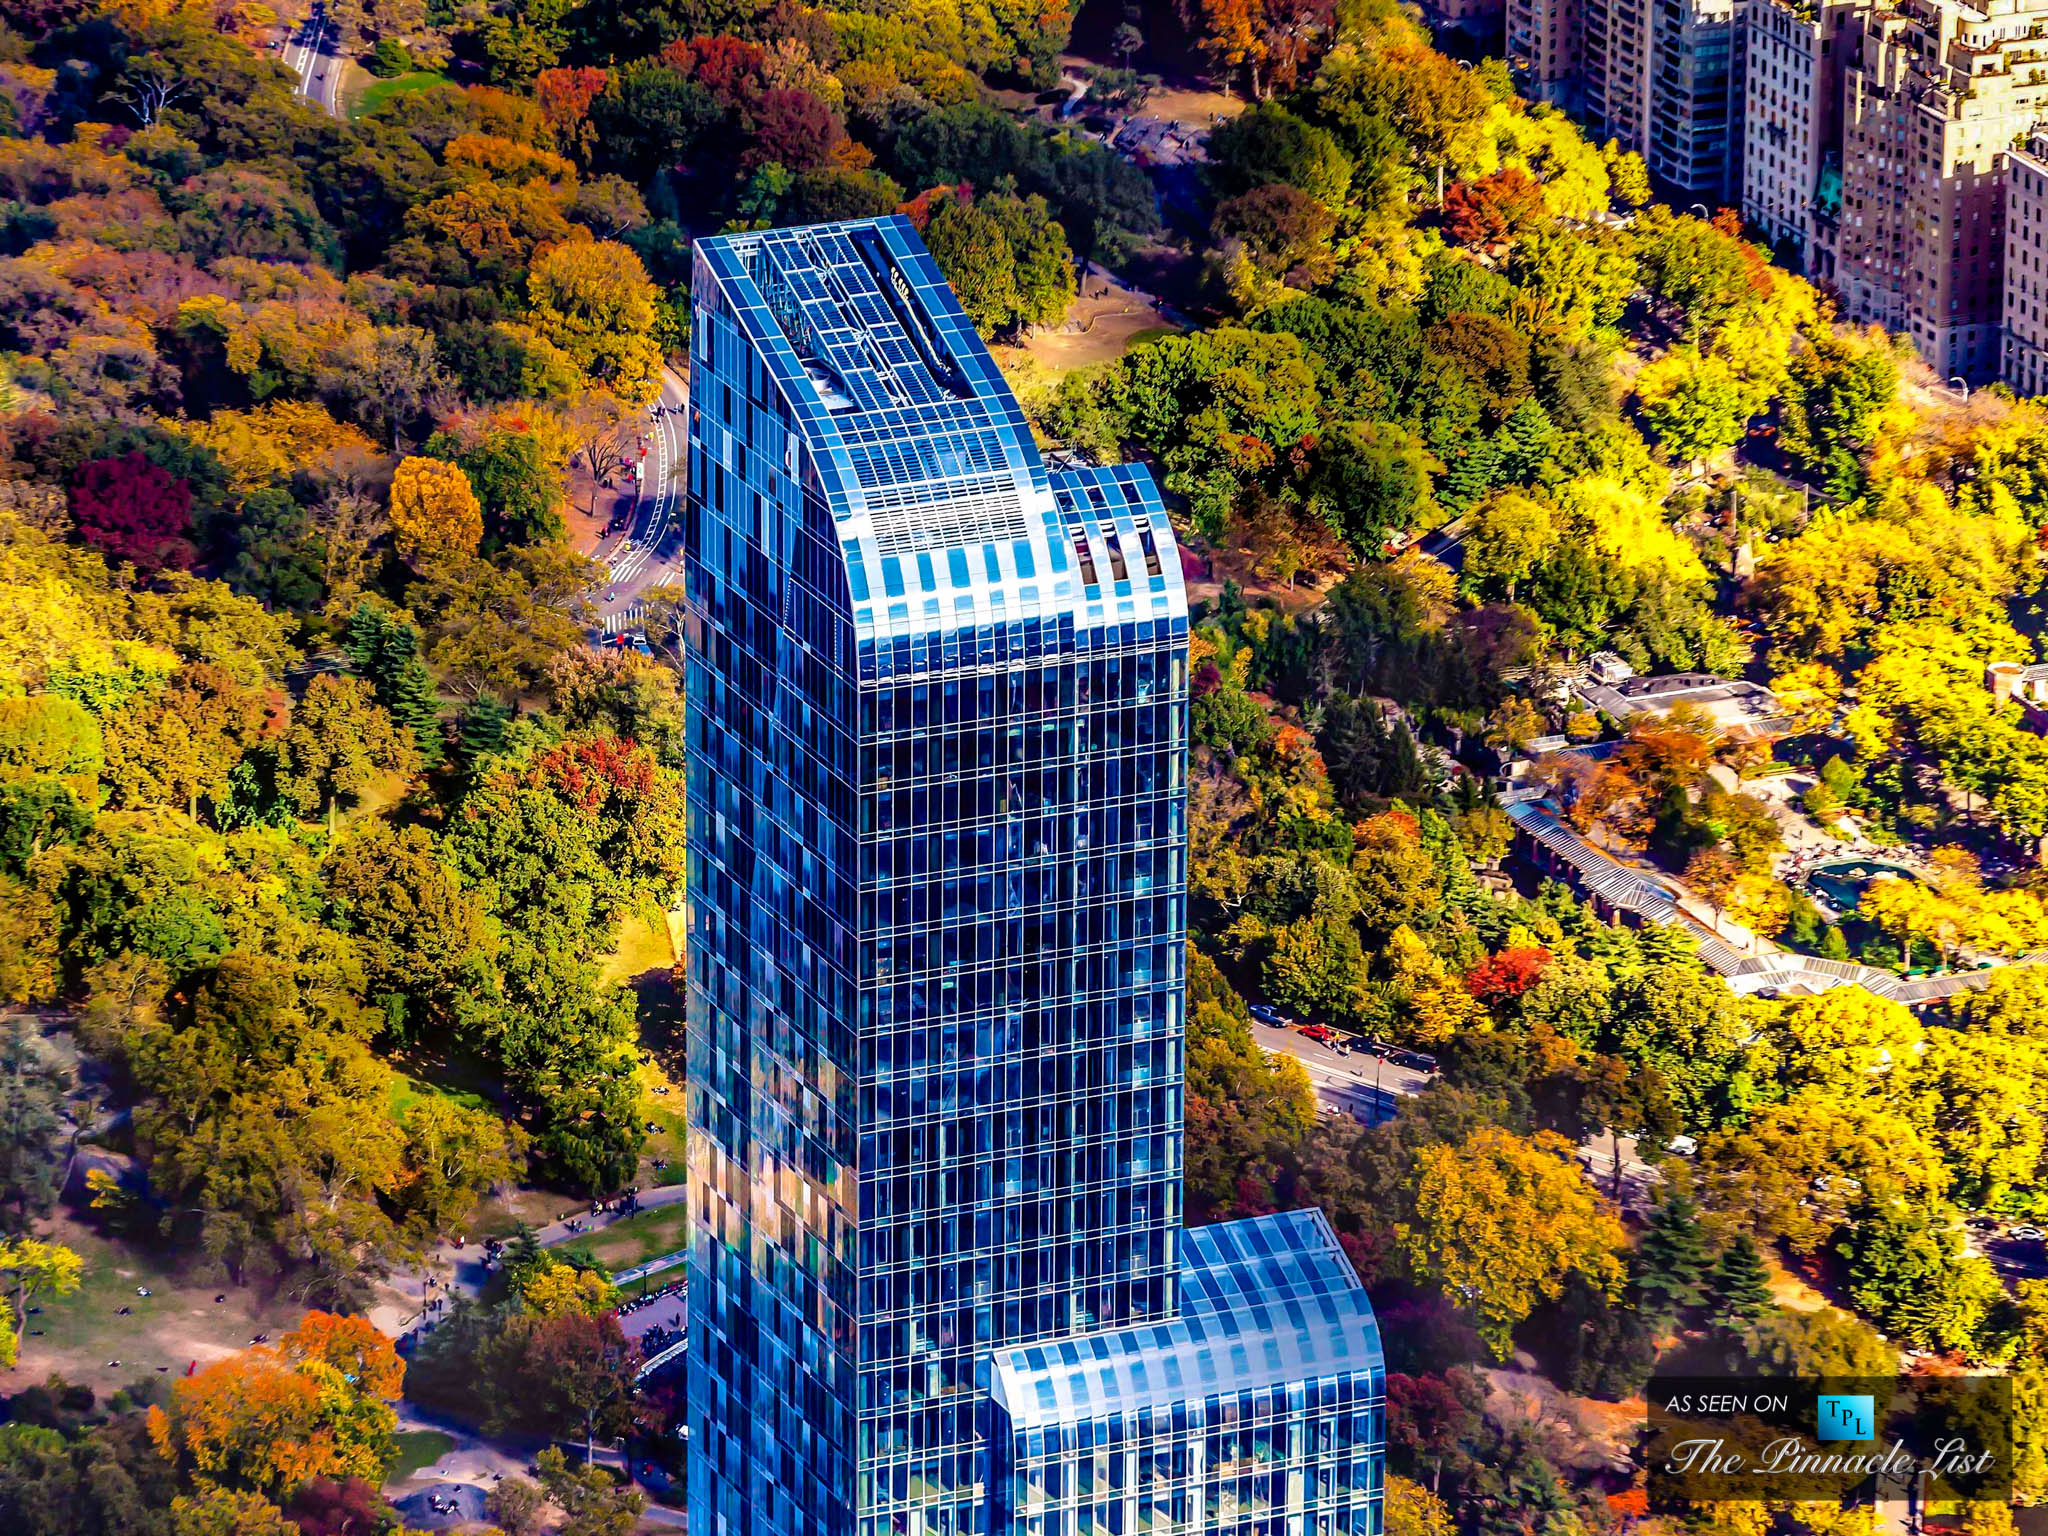 $100.5 Million - One57 Penthouse Unit 90, New York, NY, USA - Exceeding $100 Million - The 5 Most Expensive Homes Sold in the World